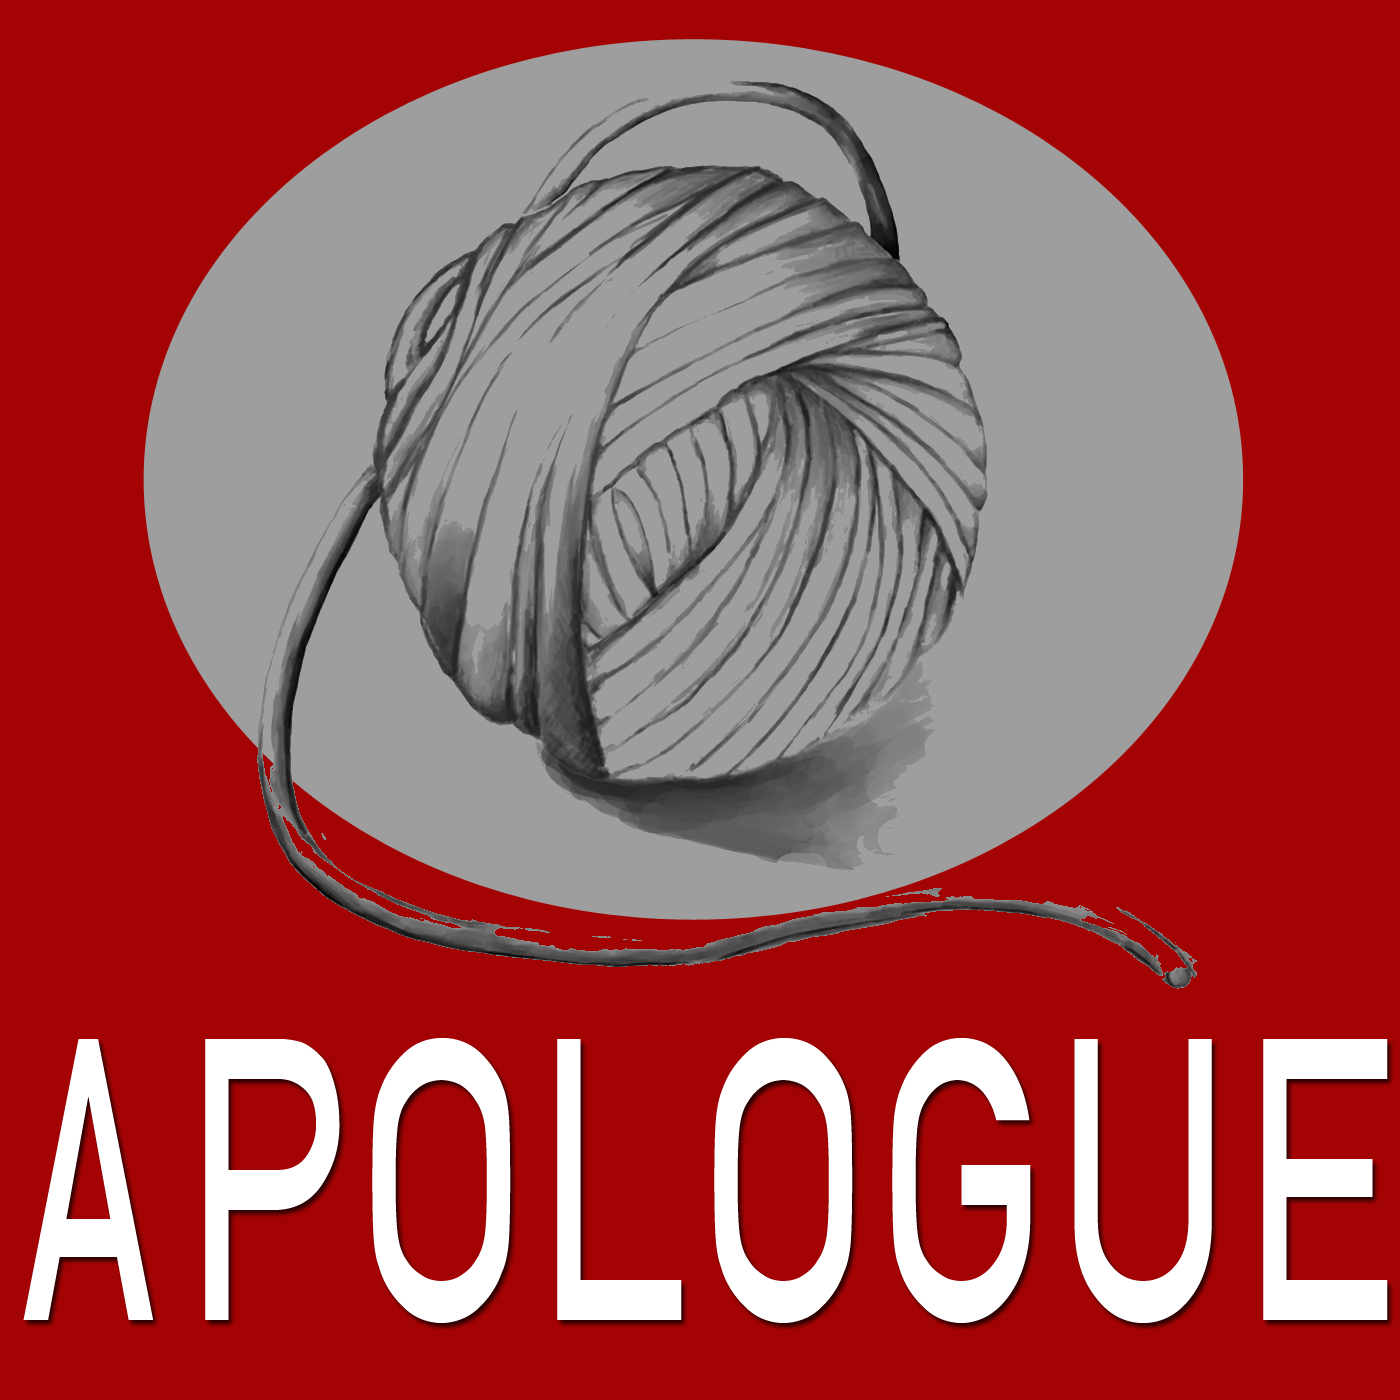 apologue_logo2.png